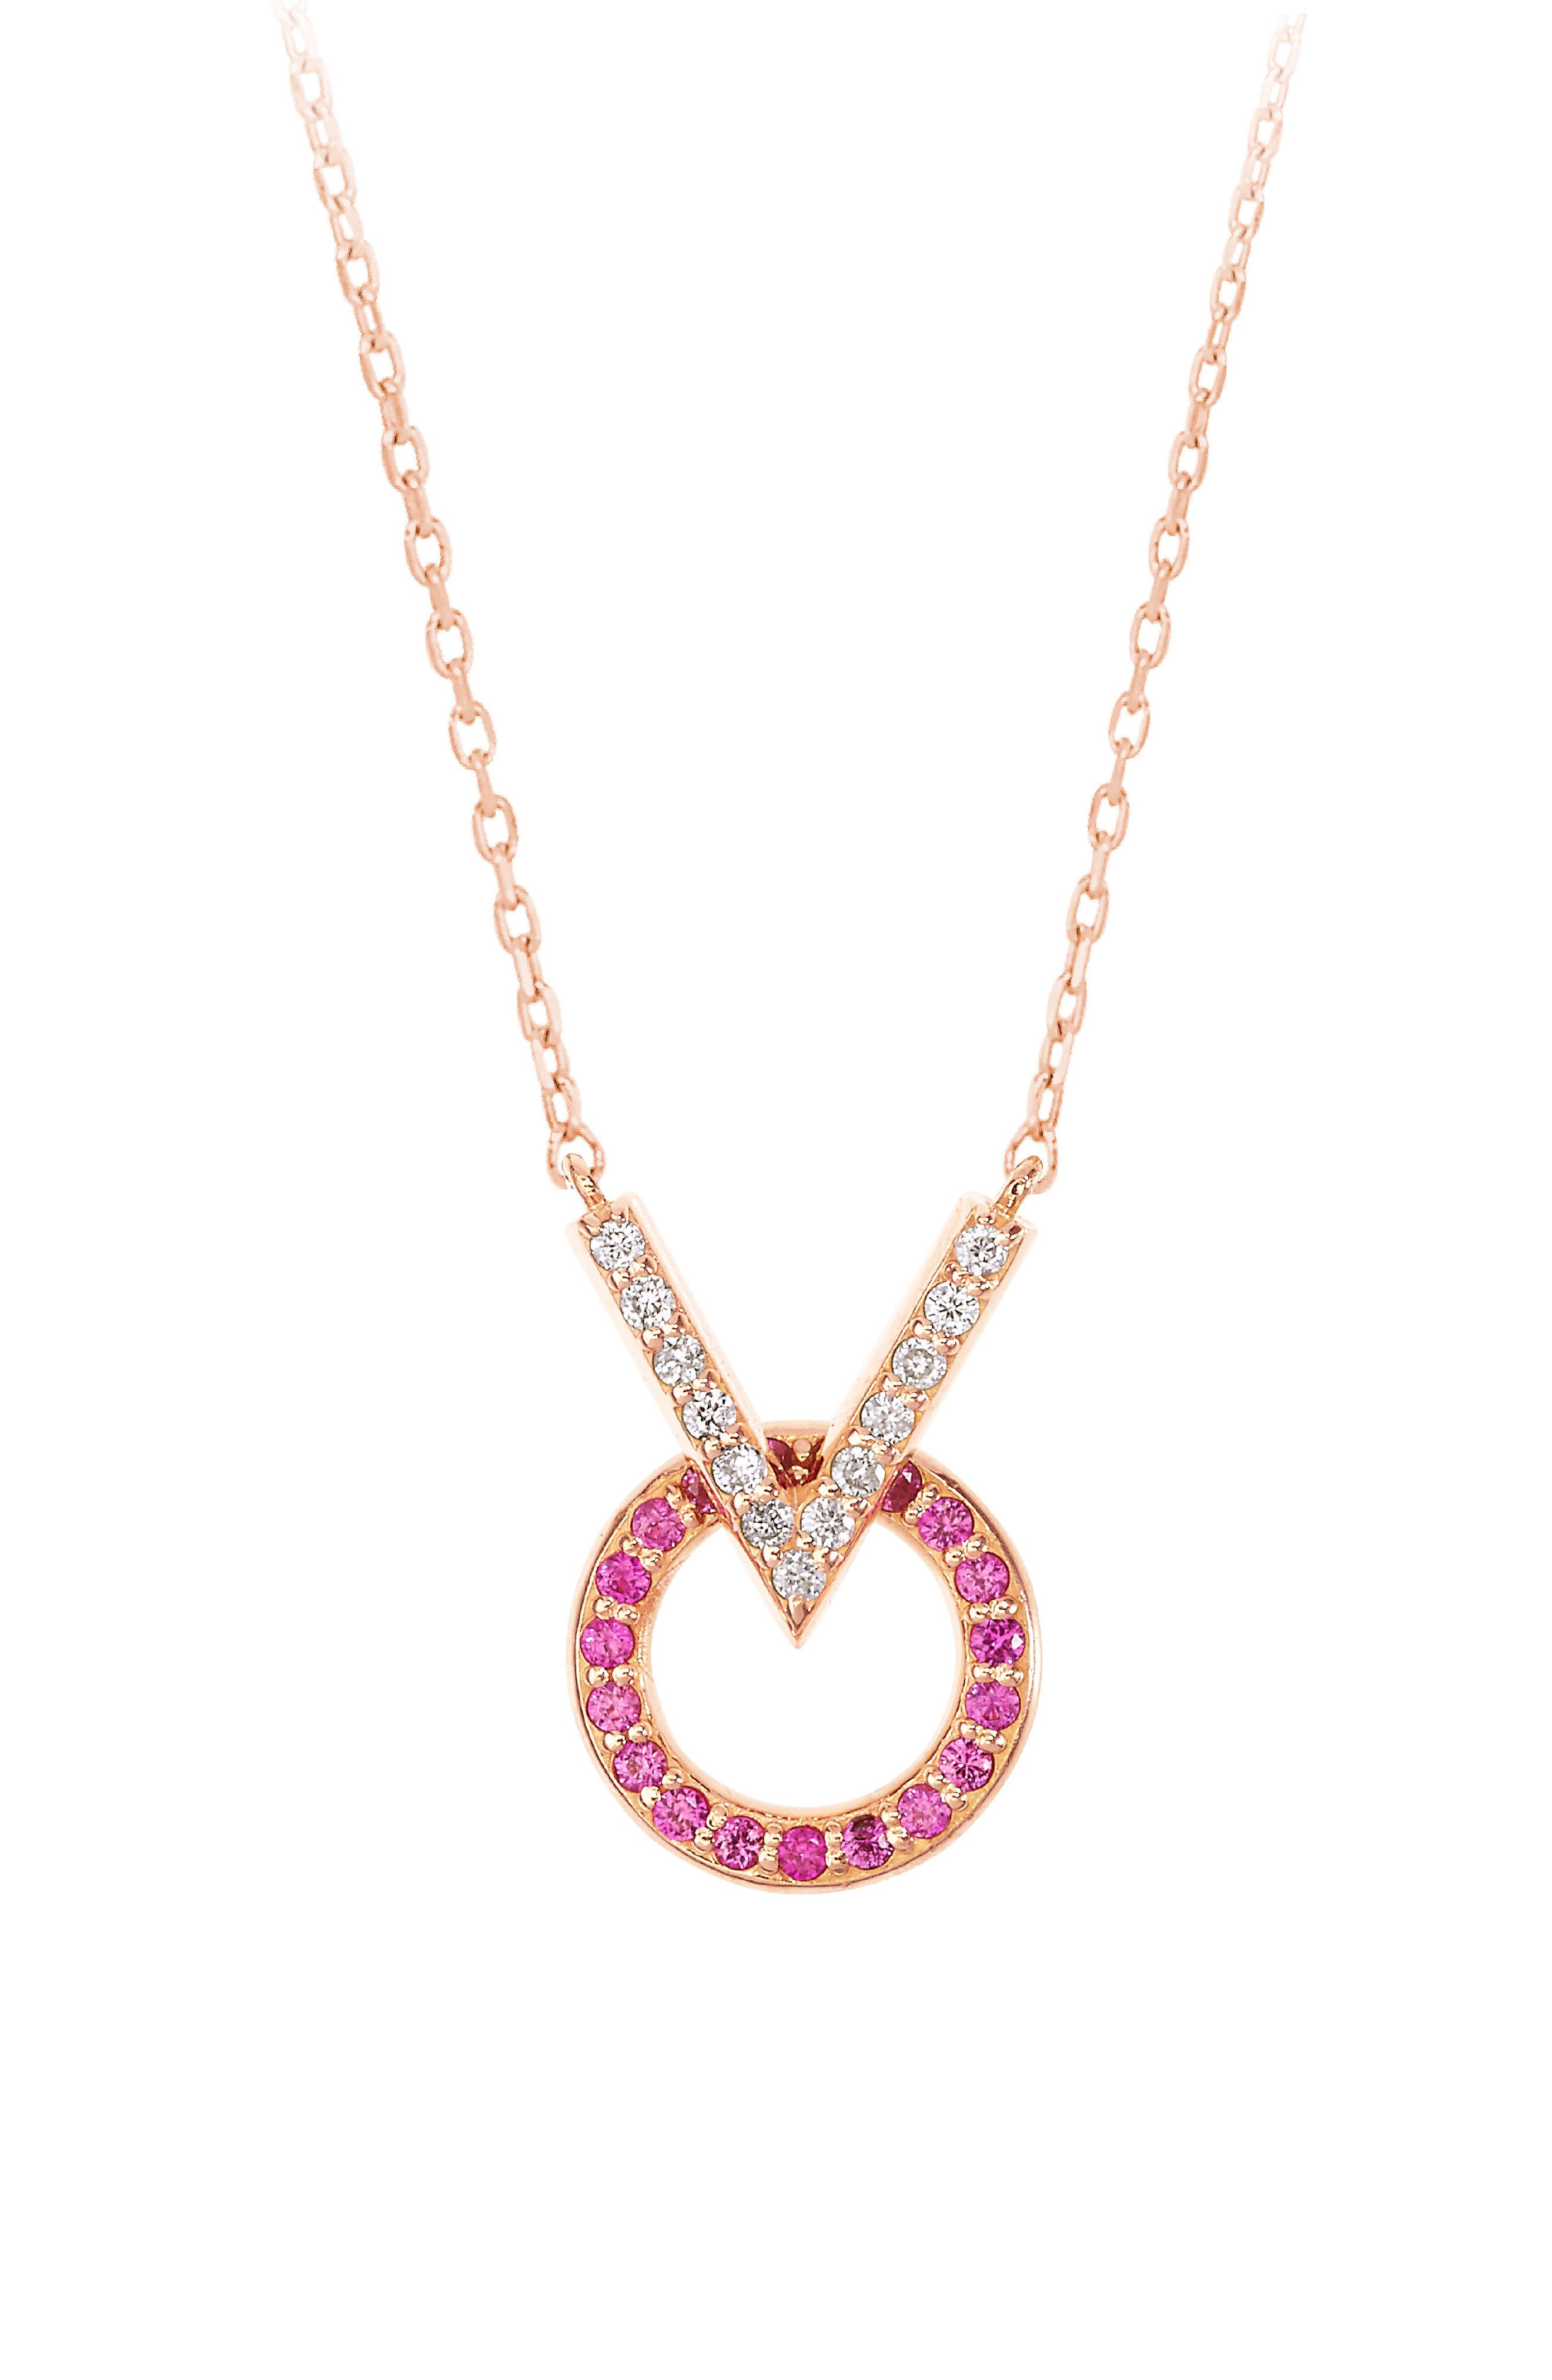 Baby Memphis V Round Diamond & Pink Sapphire Necklace,                             Main thumbnail 1, color,                             710